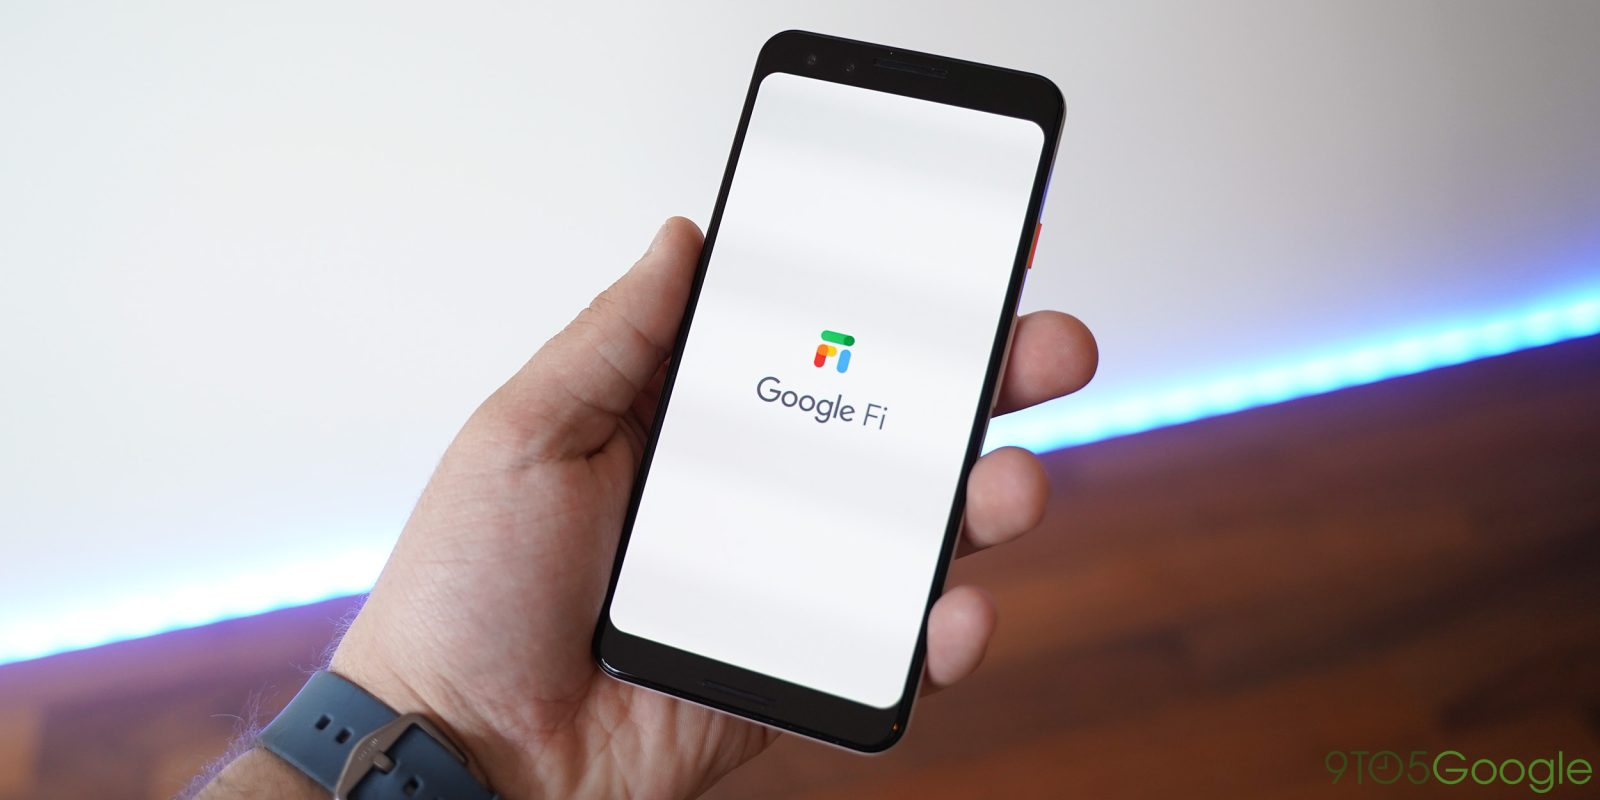 New Google Fi users can get a free month of service - 9to5Google